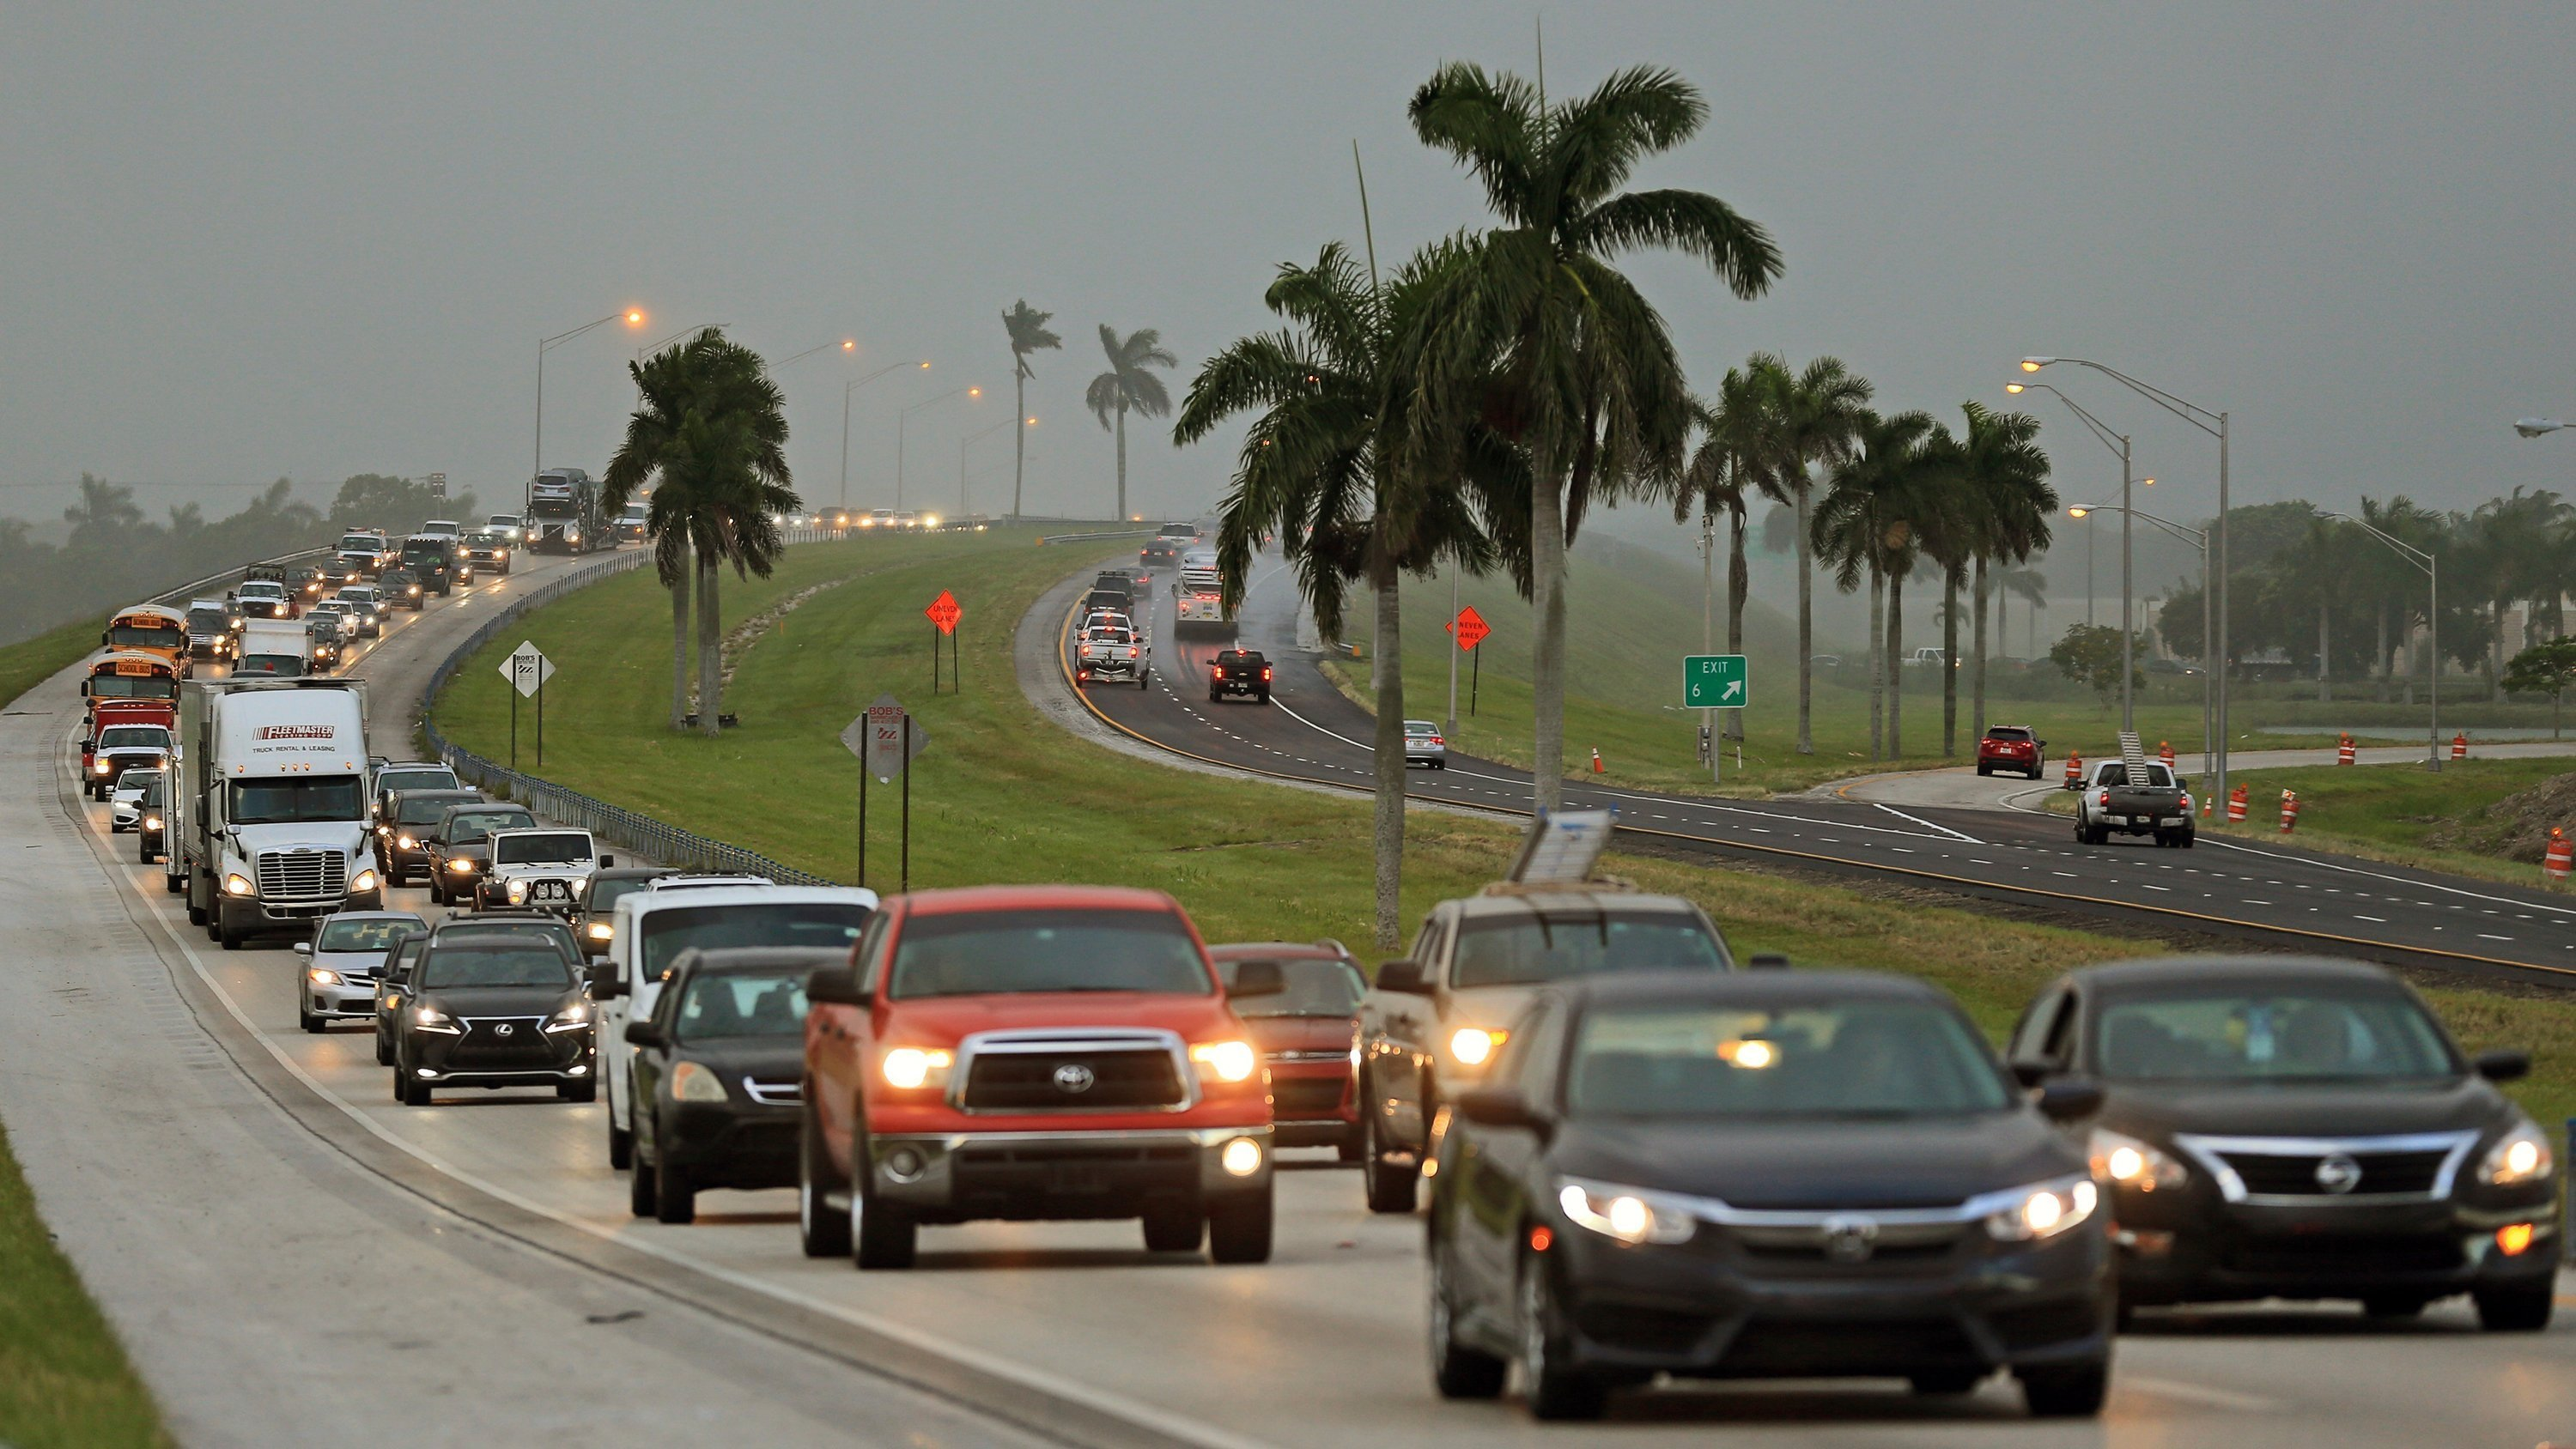 ***This image is for use with this specific article only.***  Residents of the Miami area and the Florida Keys streamed north in packed vehicles, anxiously rushing to dodge Hurricane Irma as the deadly Category 4 storm took aim at the state's eastern...